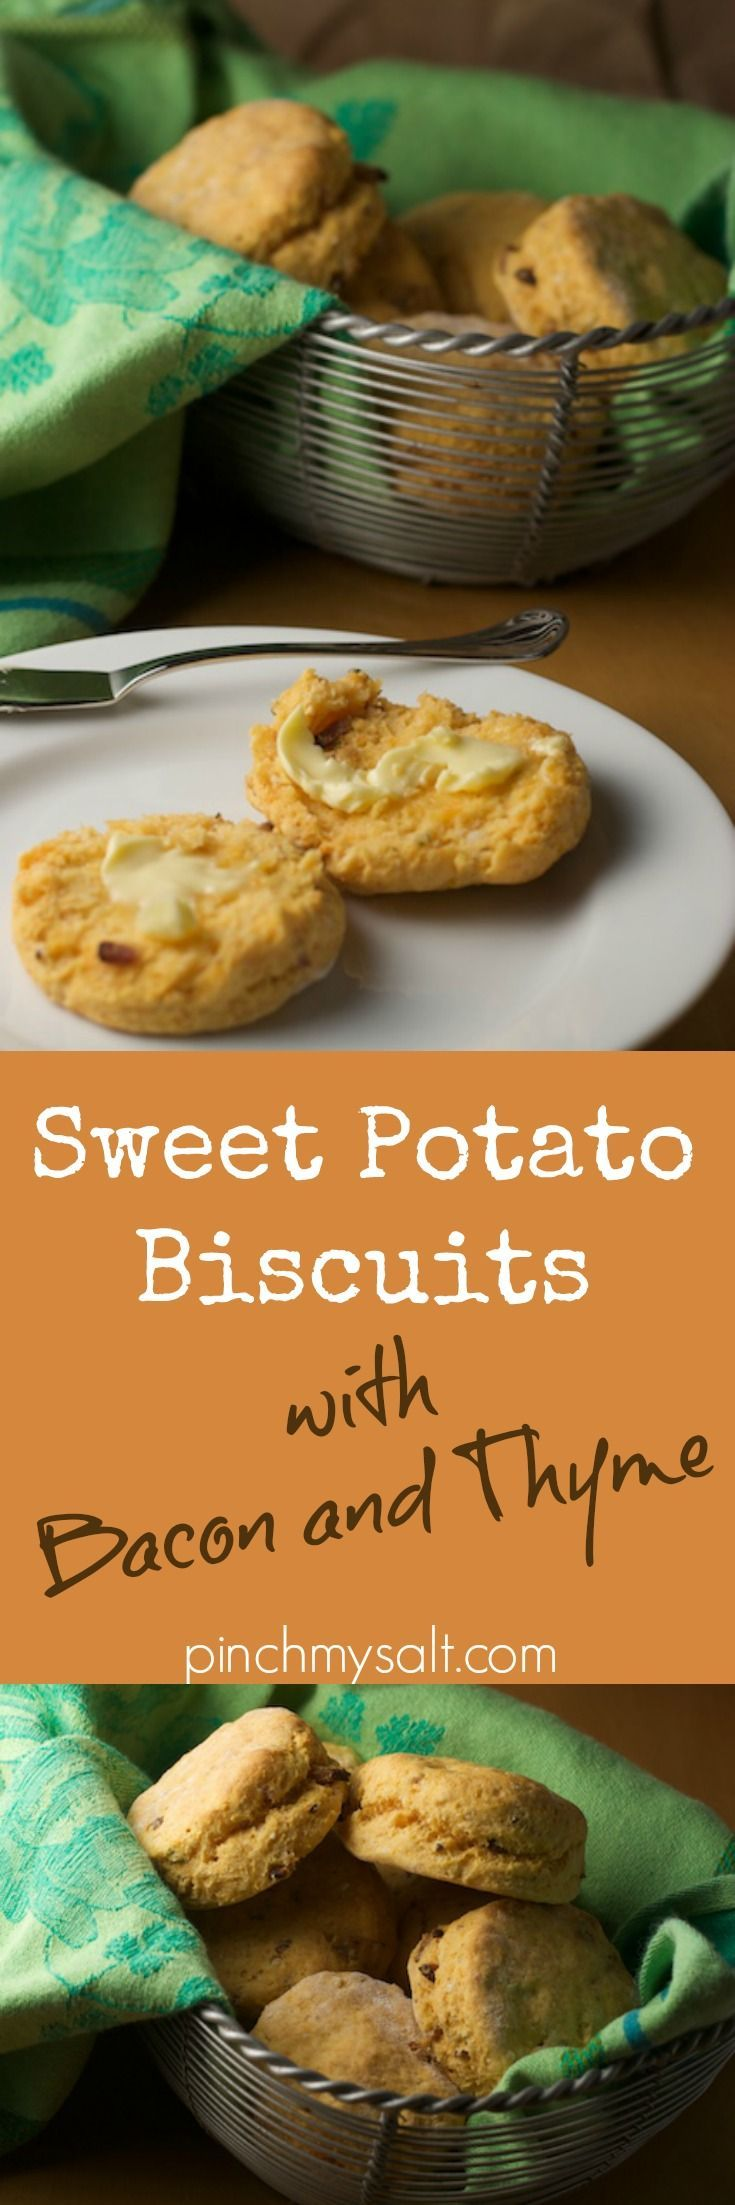 Easy sweet potato biscuits with bacon and thyme recipe made with Bisquick. These delicious semi-homemade biscuits are slightly sweet and the savory flavors of bacon and thyme turn these into something you'd never guess came from a box mix! from pinchmysalt.com